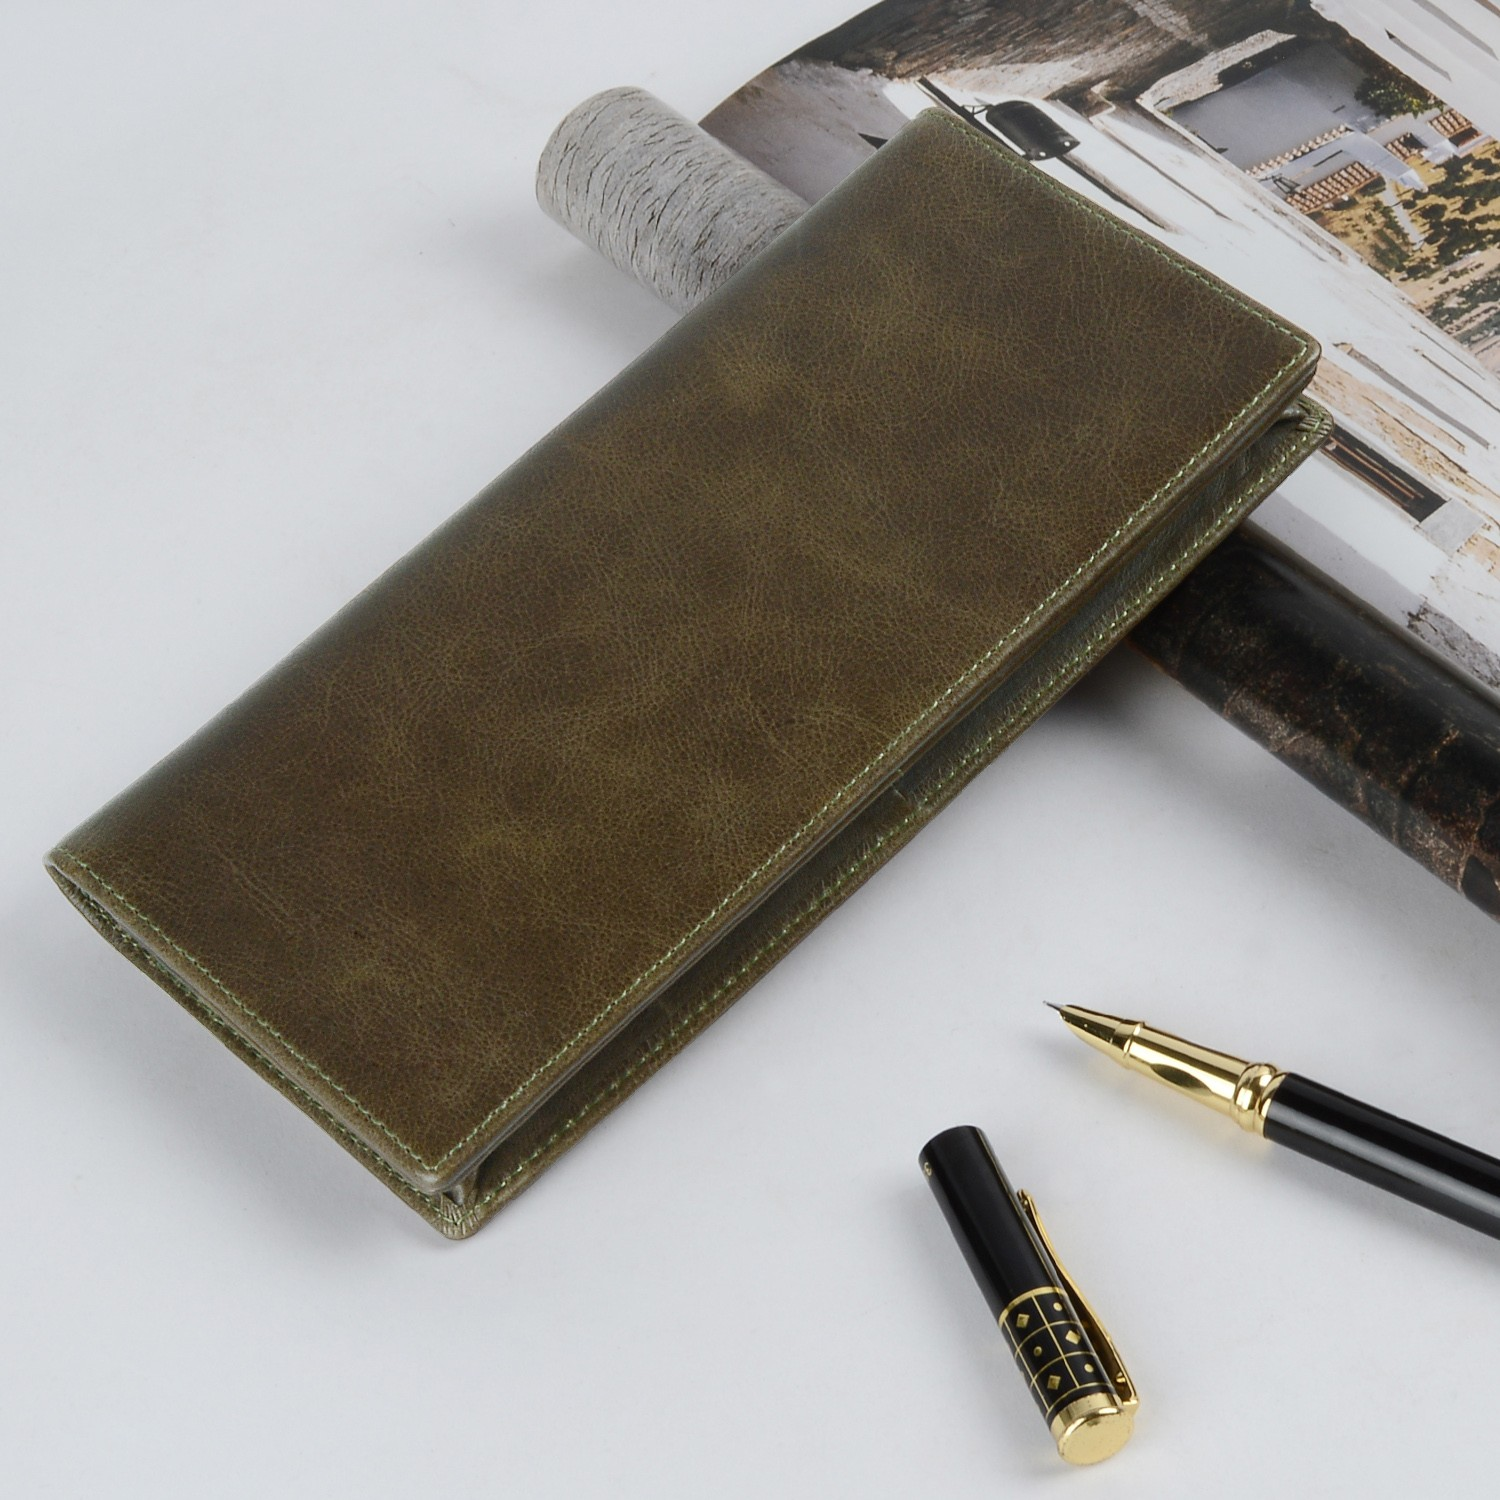 AIVI beautiful leather credit card wallet factory for iphone 8 / 8plus-6